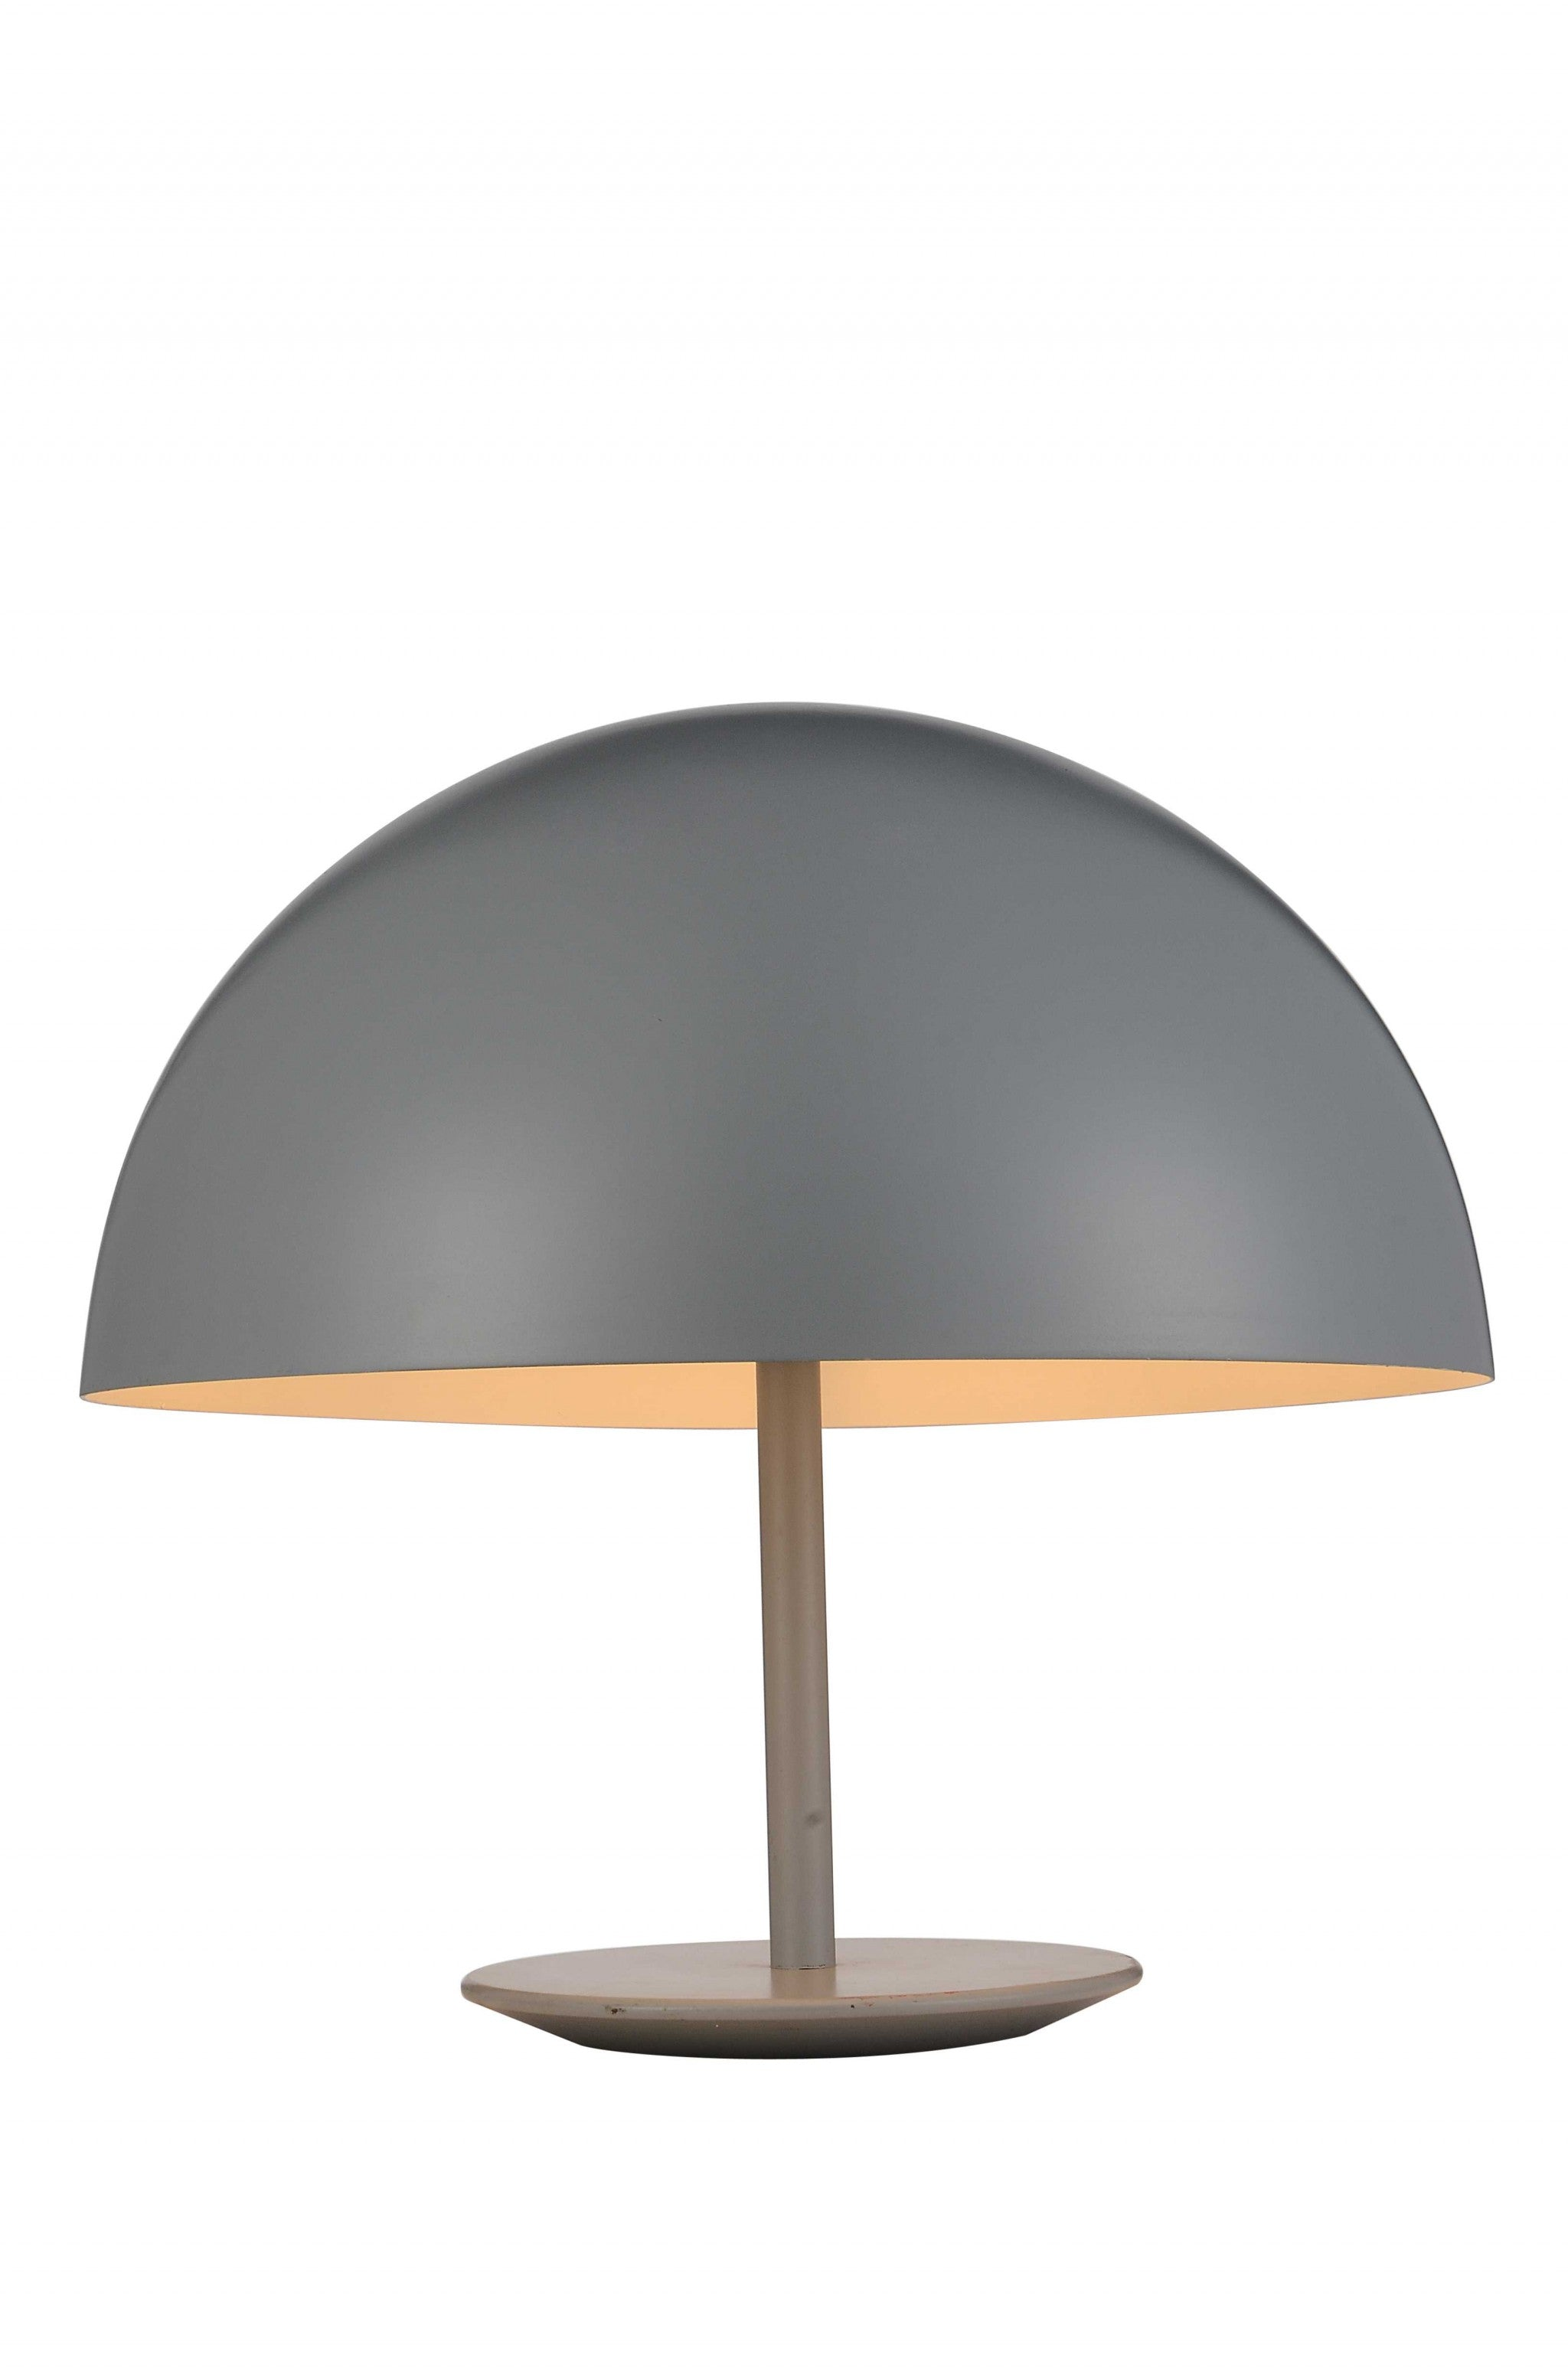 "16"" X 16"" X 16"" Grey Aluminum Table Lamp"